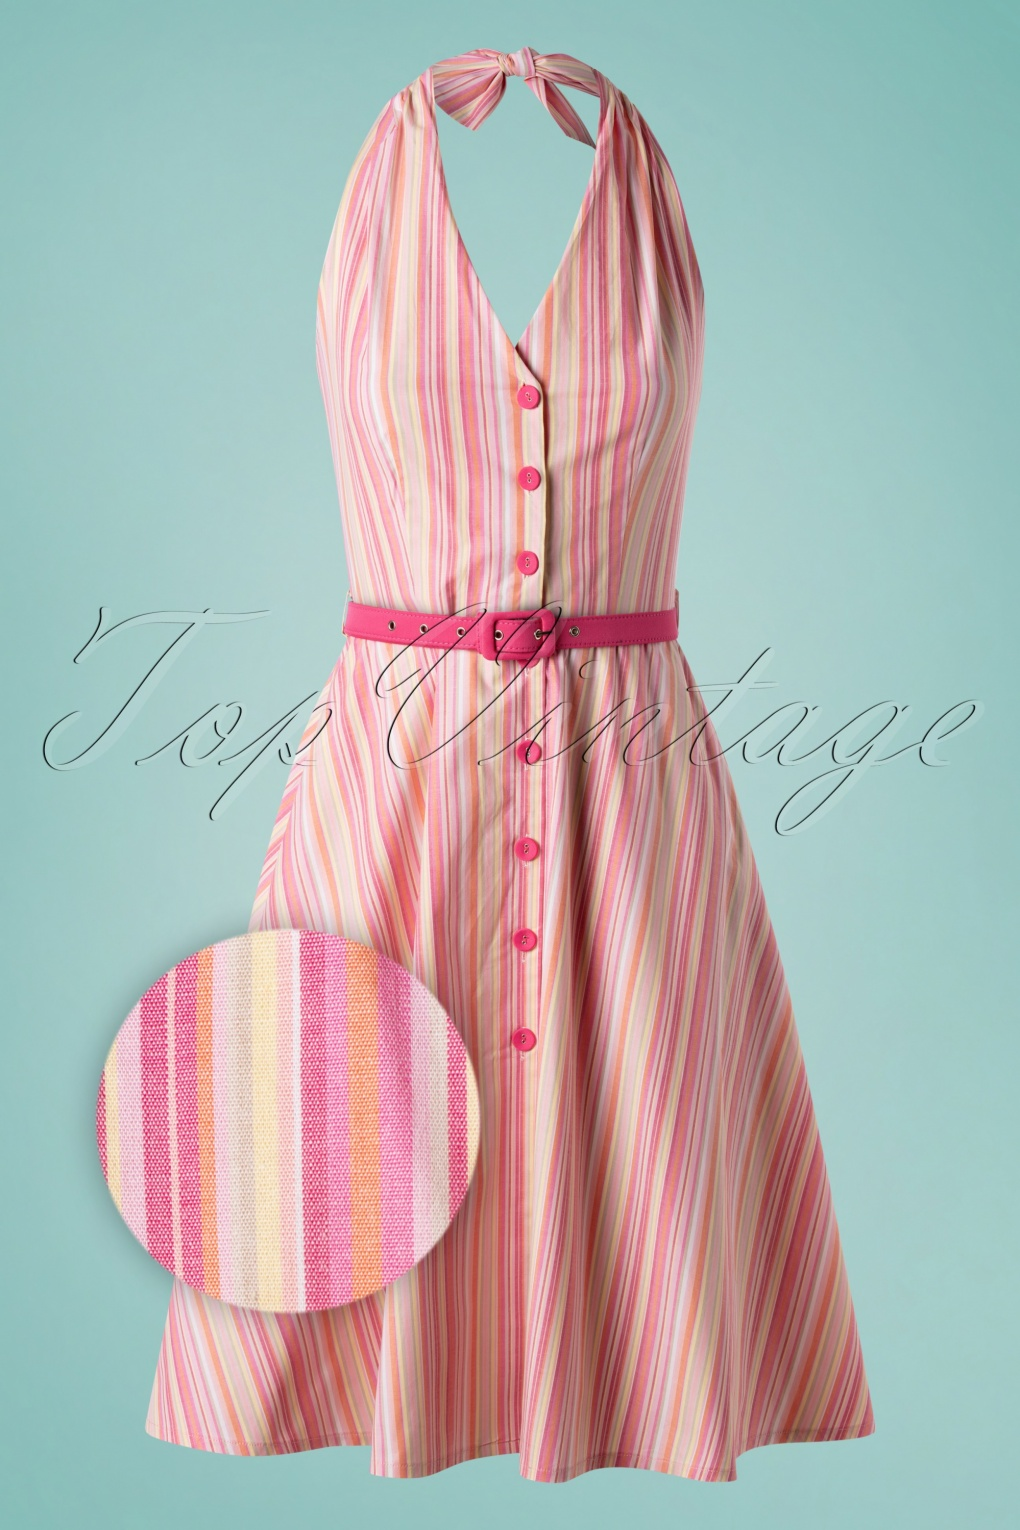 1950s Dresses, 50s Dresses | 1950s Style Dresses 50s Midge Button Down Swing Dress in Multi £47.51 AT vintagedancer.com